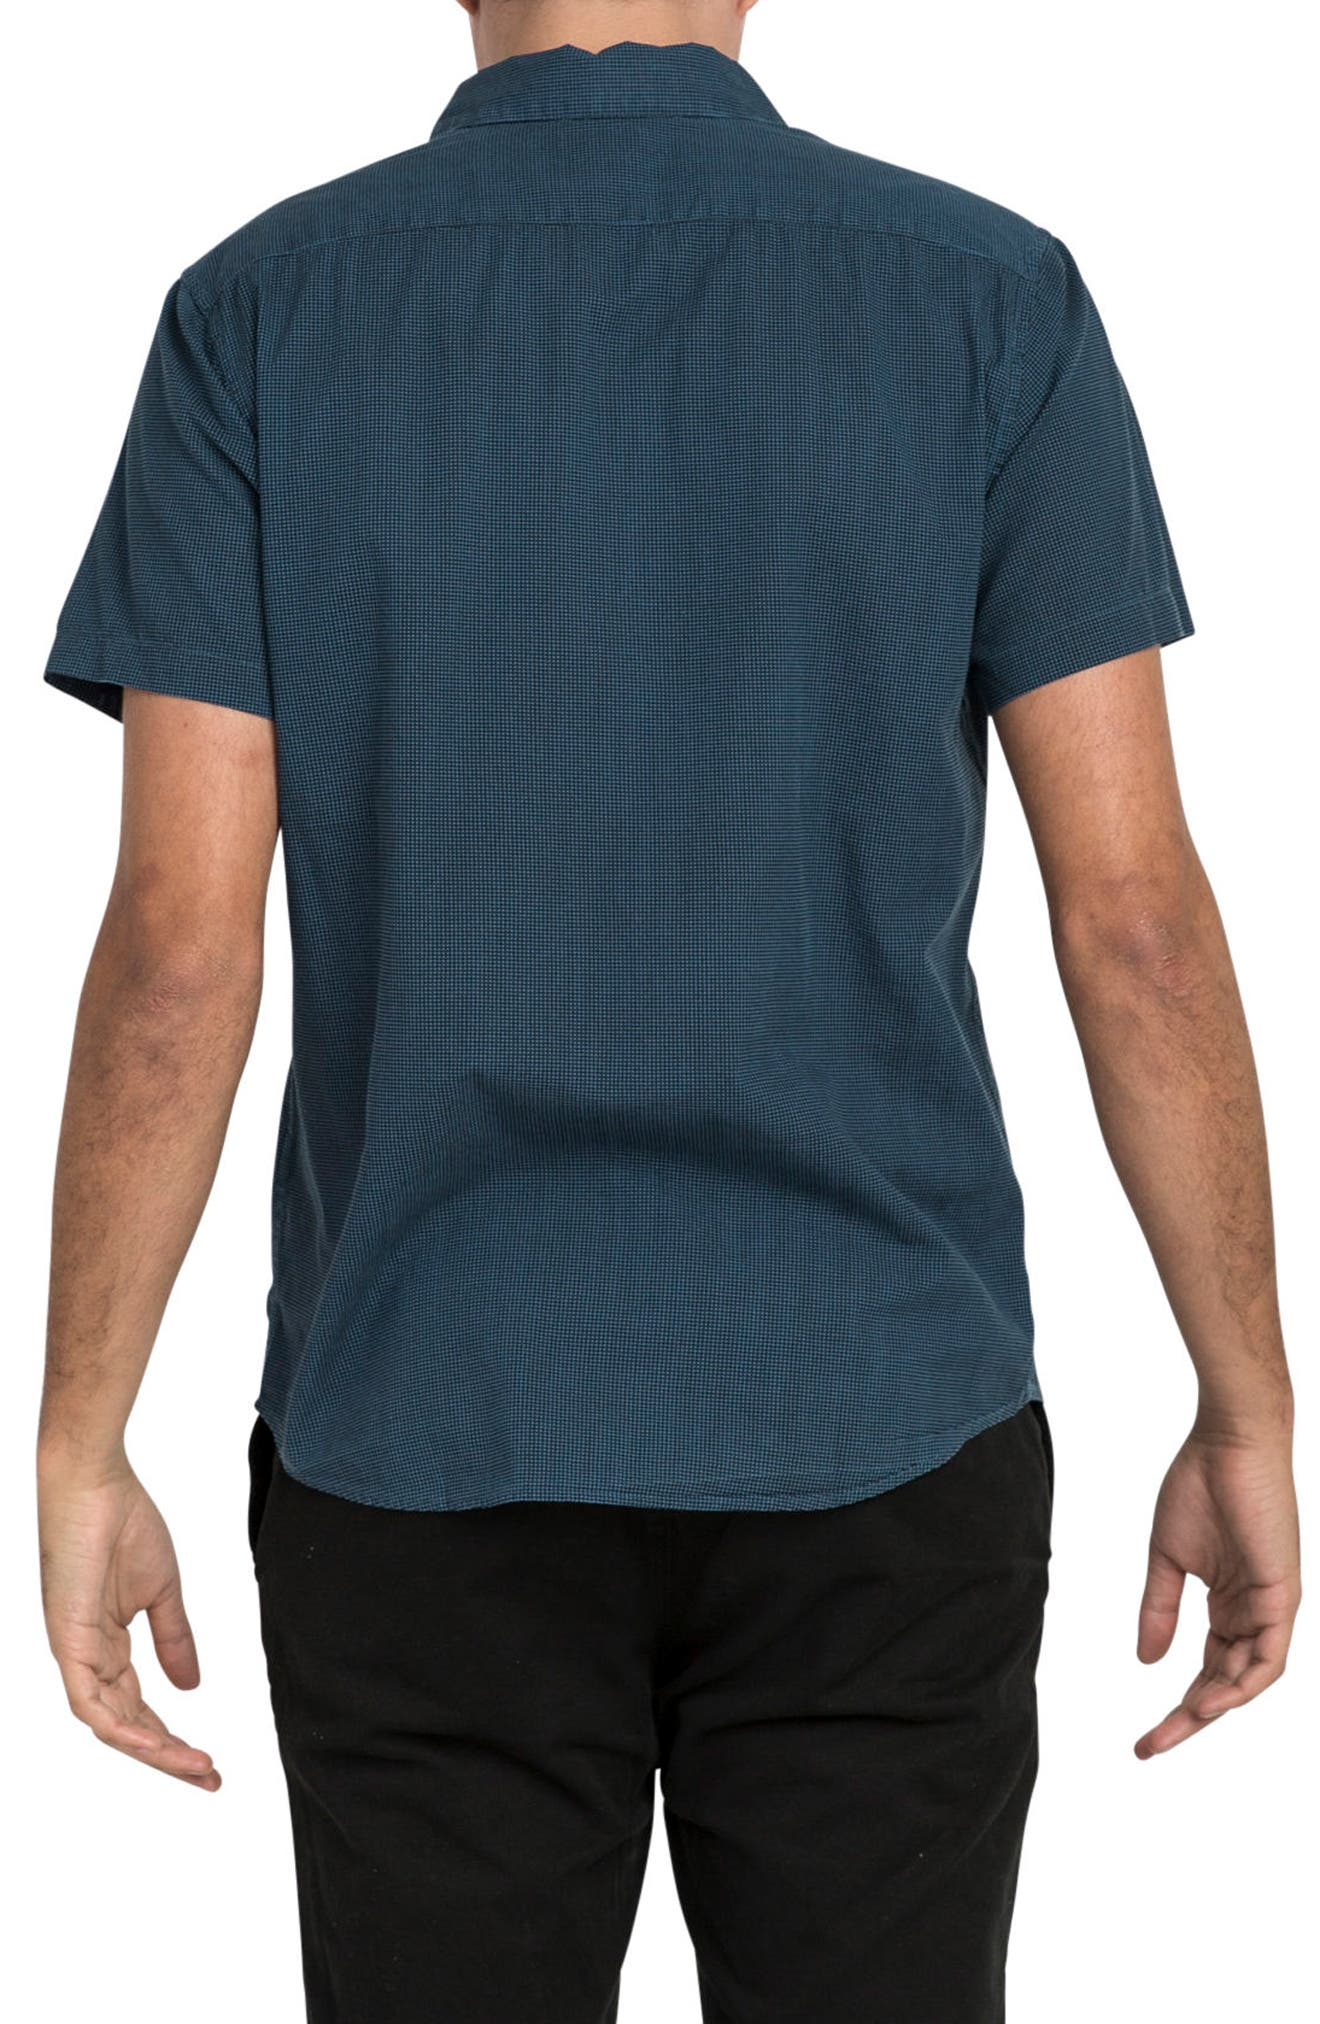 No Name Woven Shirt,                             Alternate thumbnail 2, color,                             400